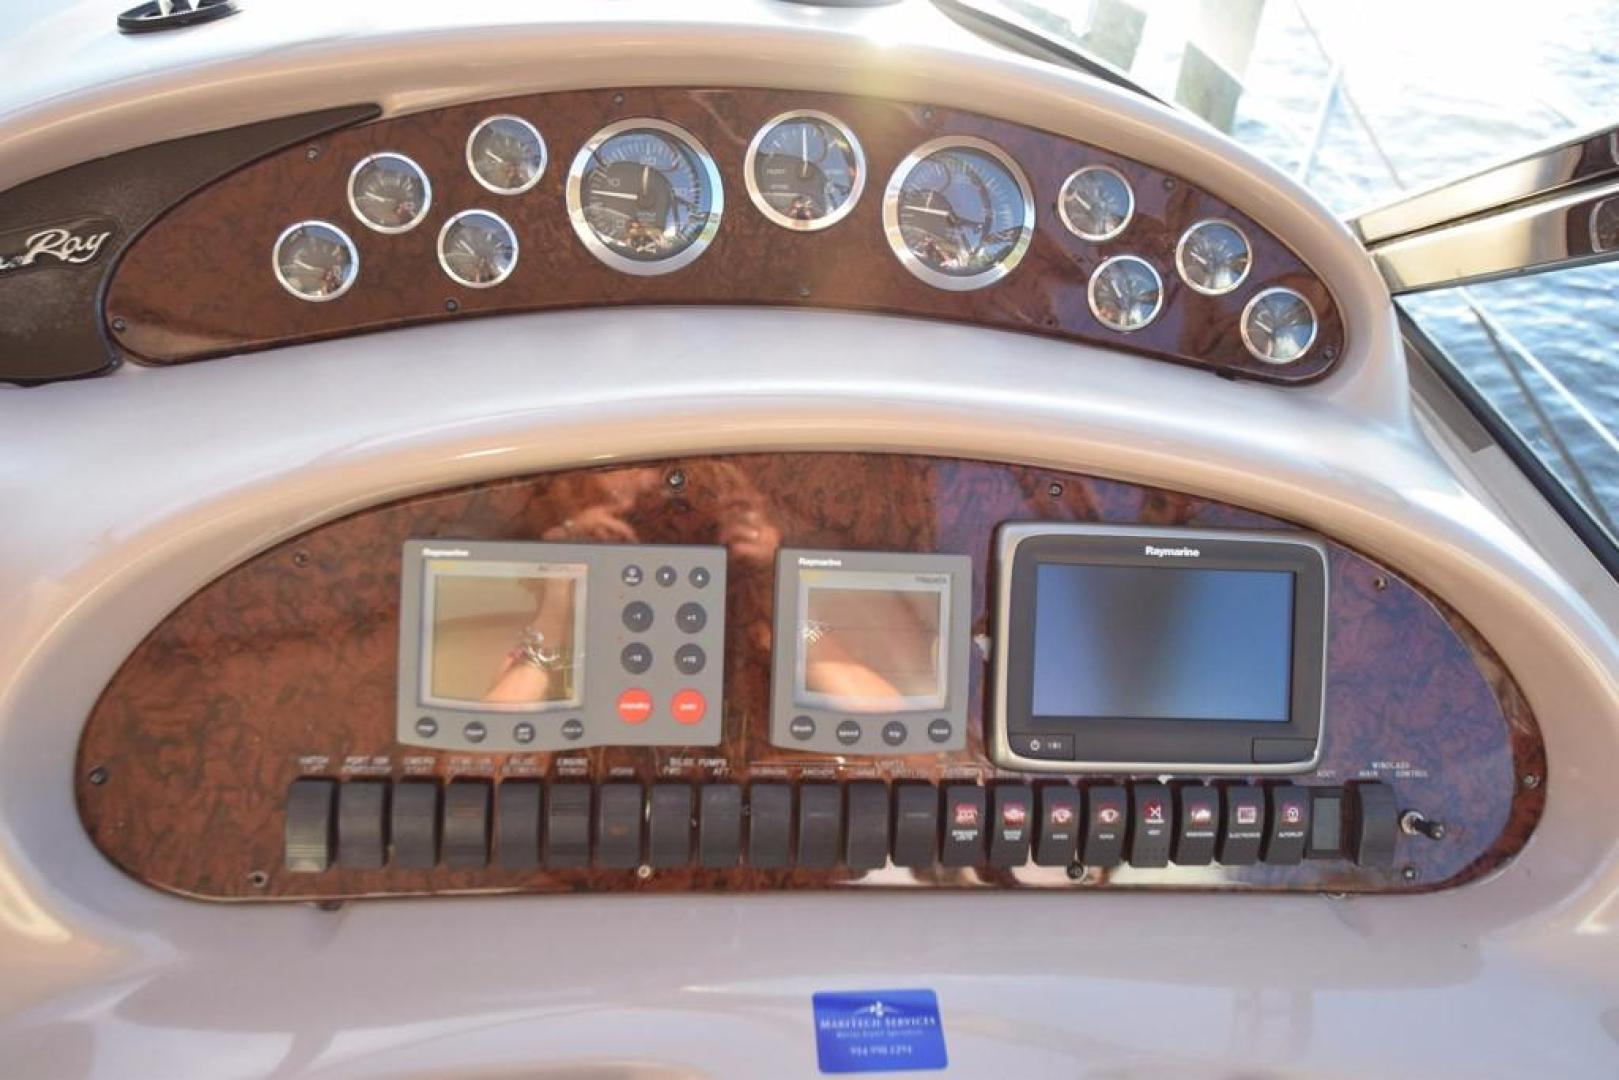 Sea Ray-Sundancer 410 2002-Float Days Ft. Lauderdale-Florida-United States-Helm Gauges-369095 | Thumbnail